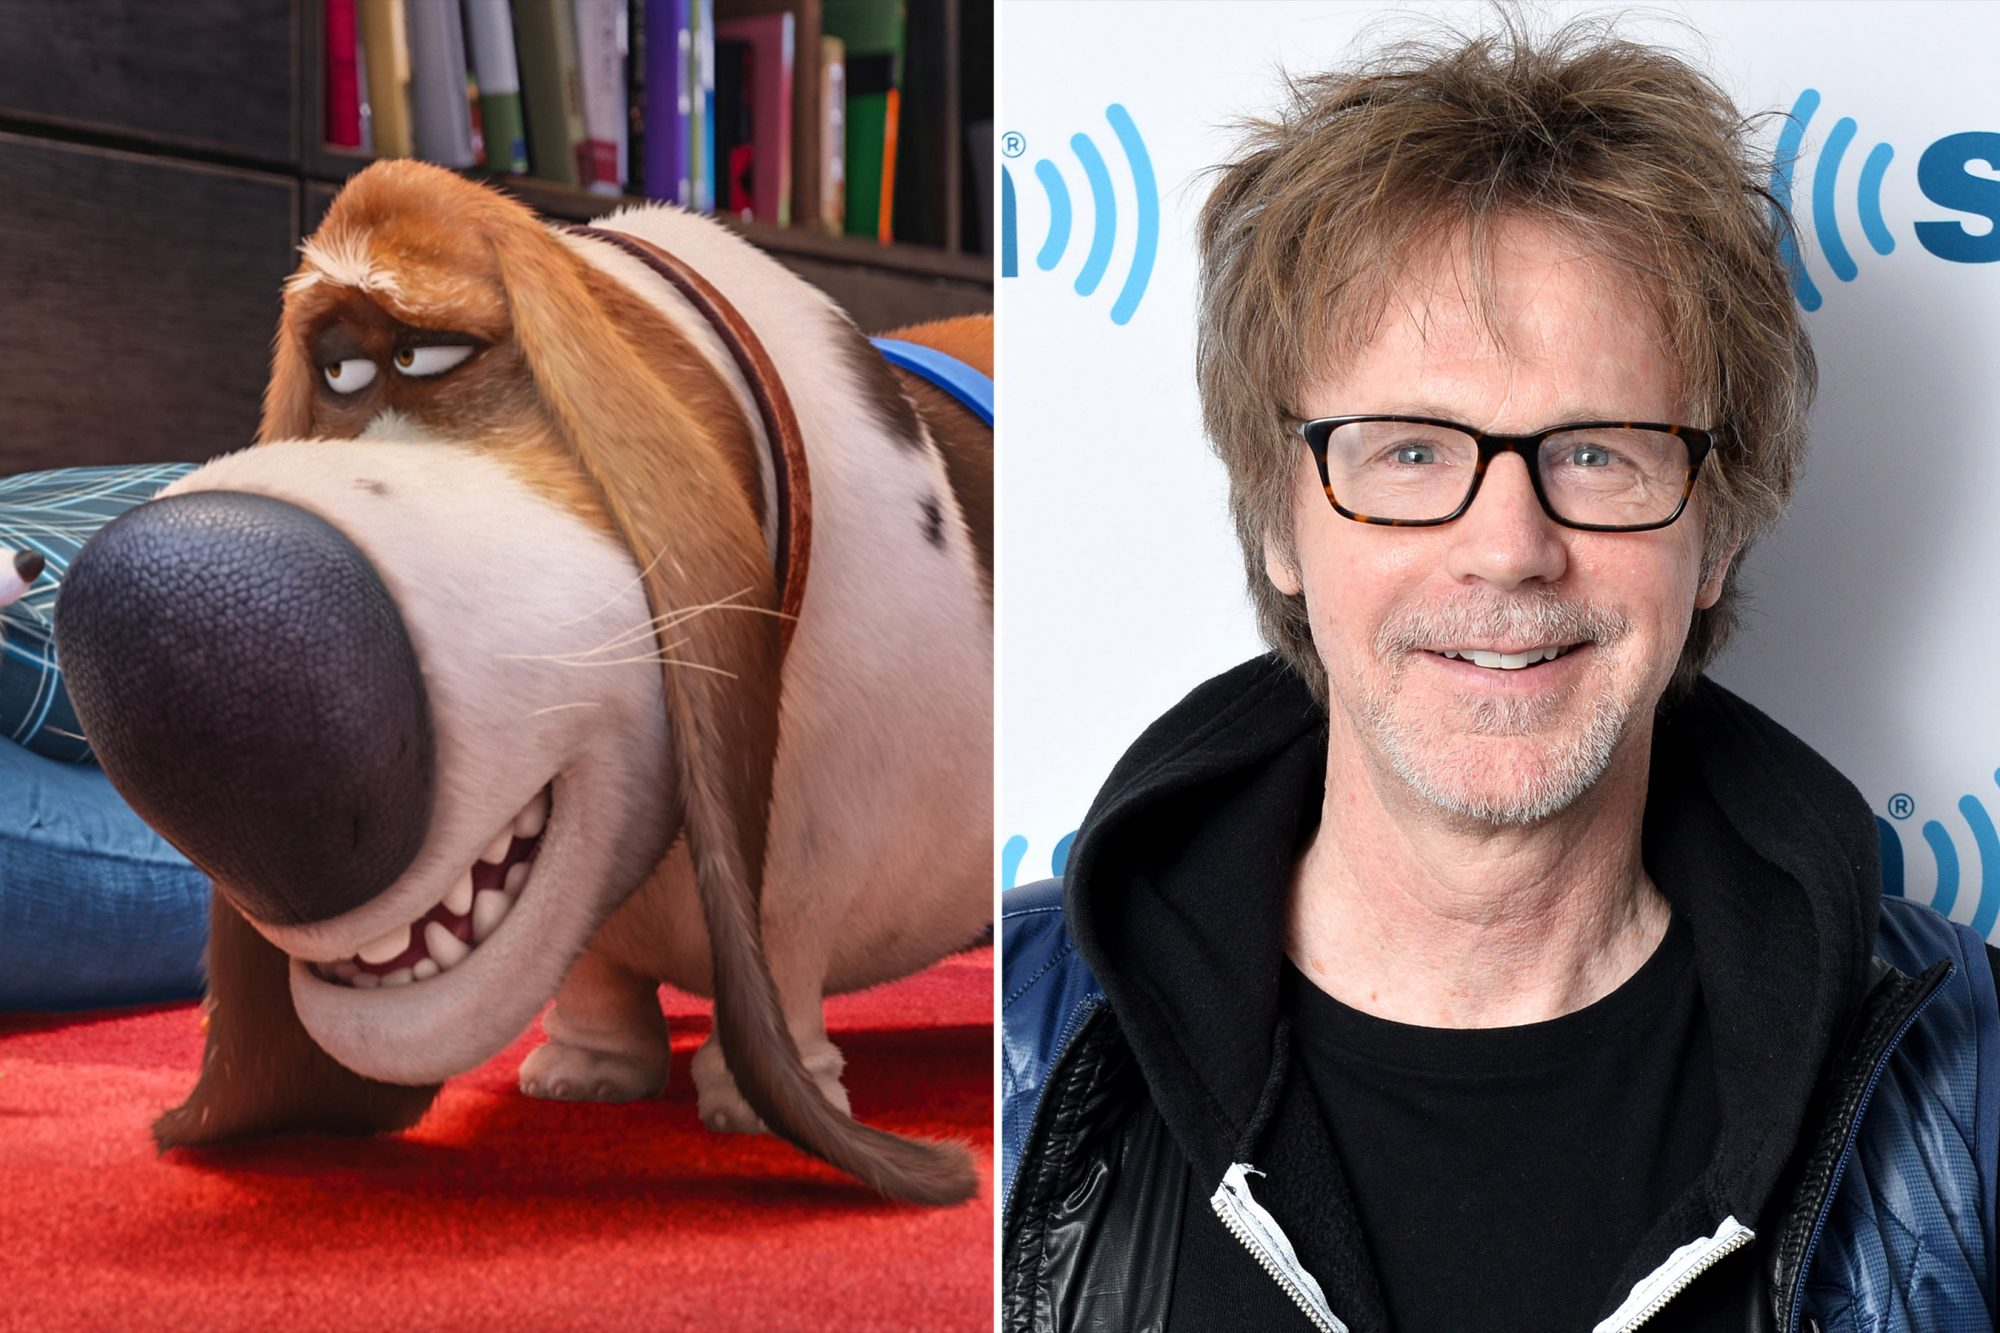 The Secret Life of Pets DANA CARVEY